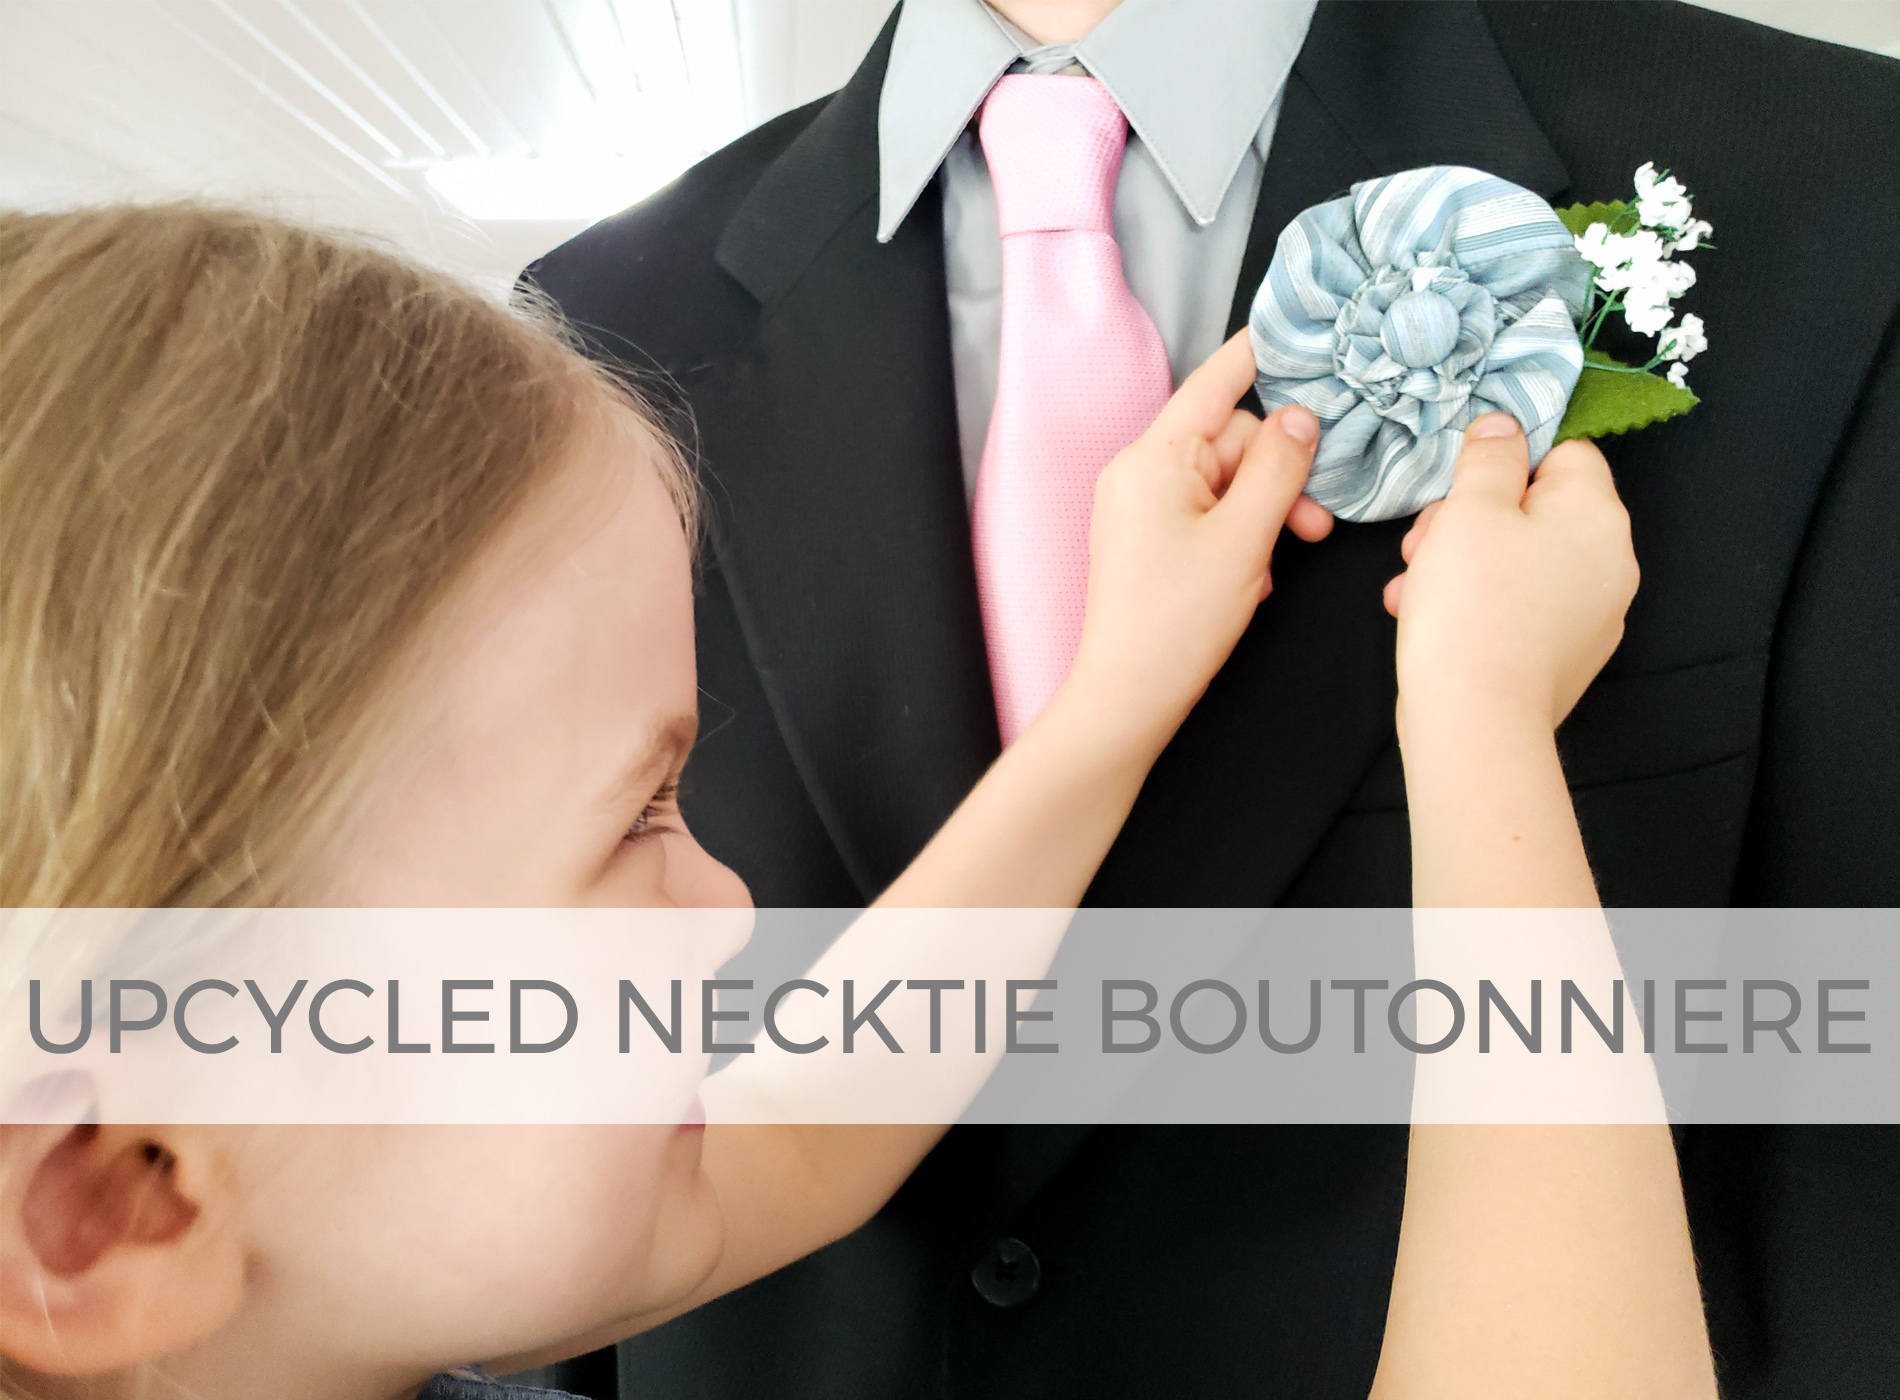 Upcycled Necktie Boutonniere Video Tutorial by Larissa of Prodigal Pieces | prodigalpieces.com #prodigalpieces